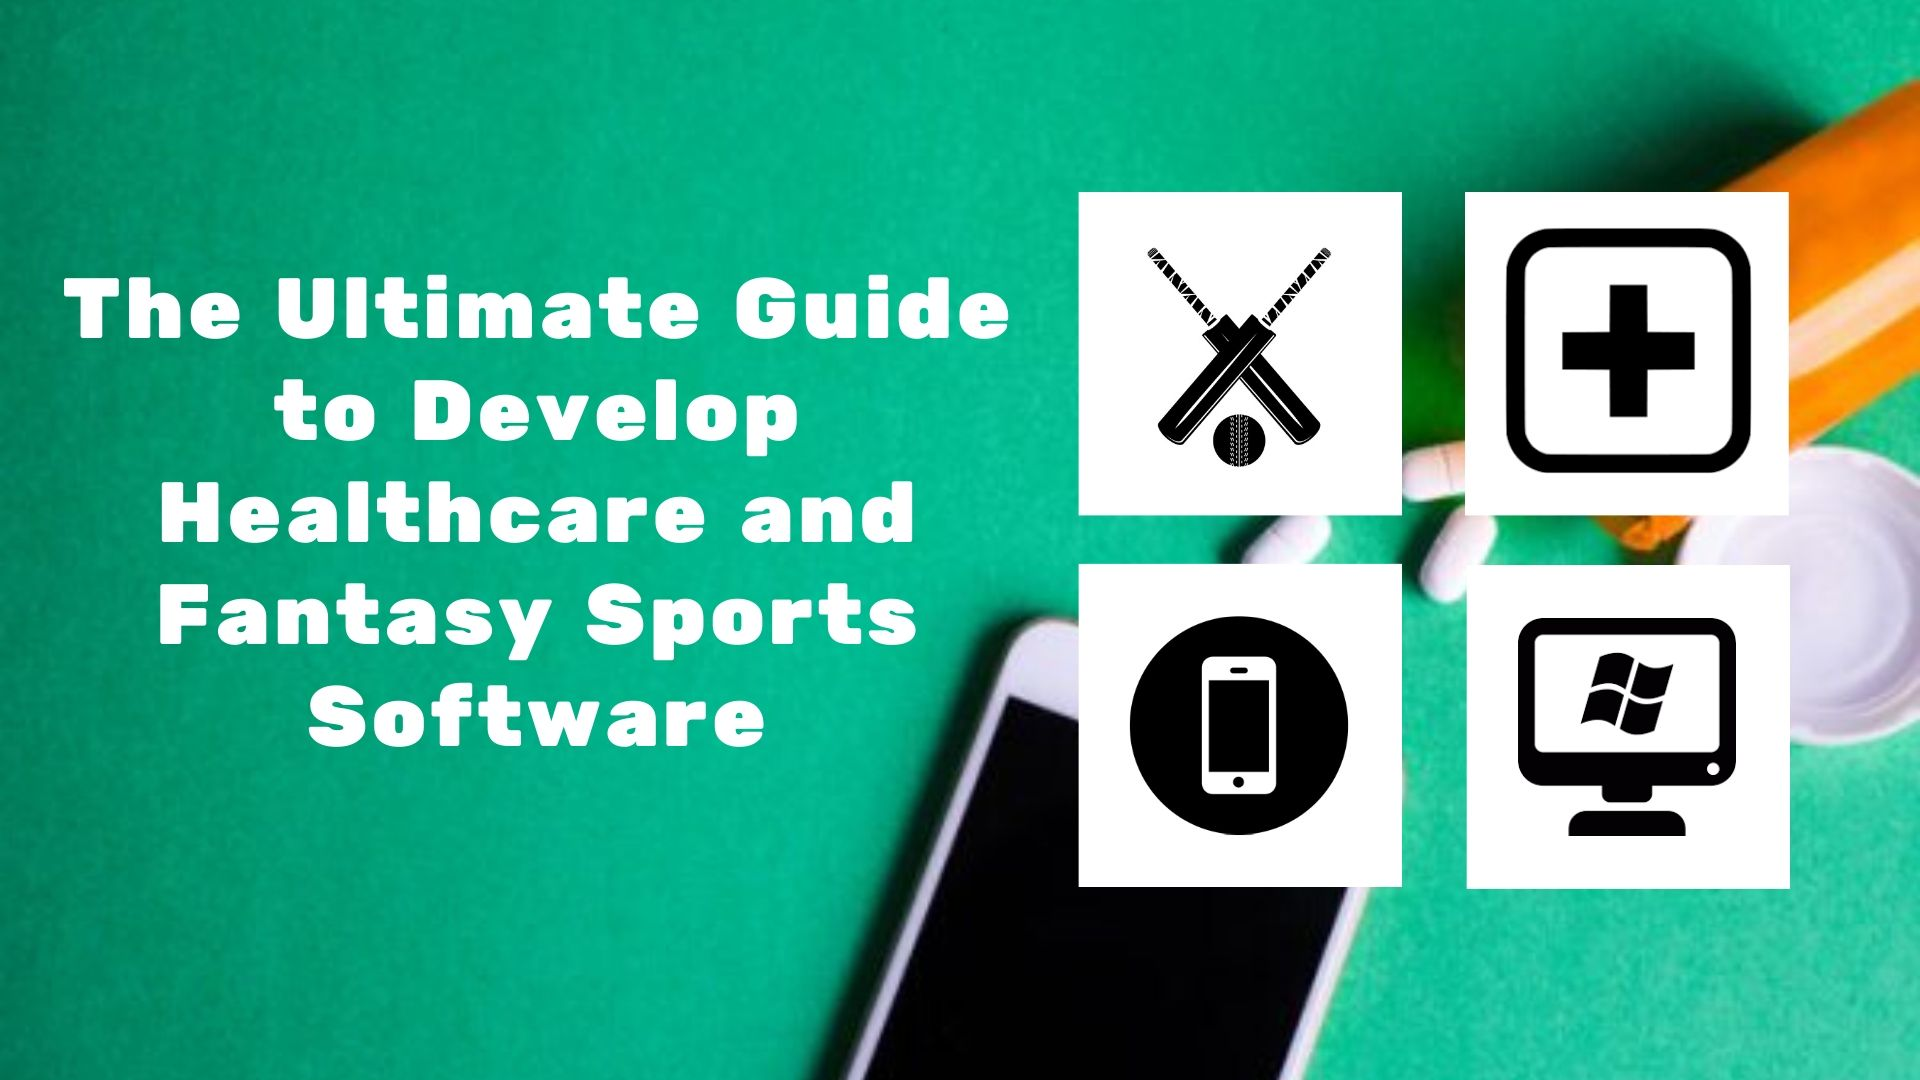 The Ultimate Guide to Develop Healthcare and Fantasy Sports Software